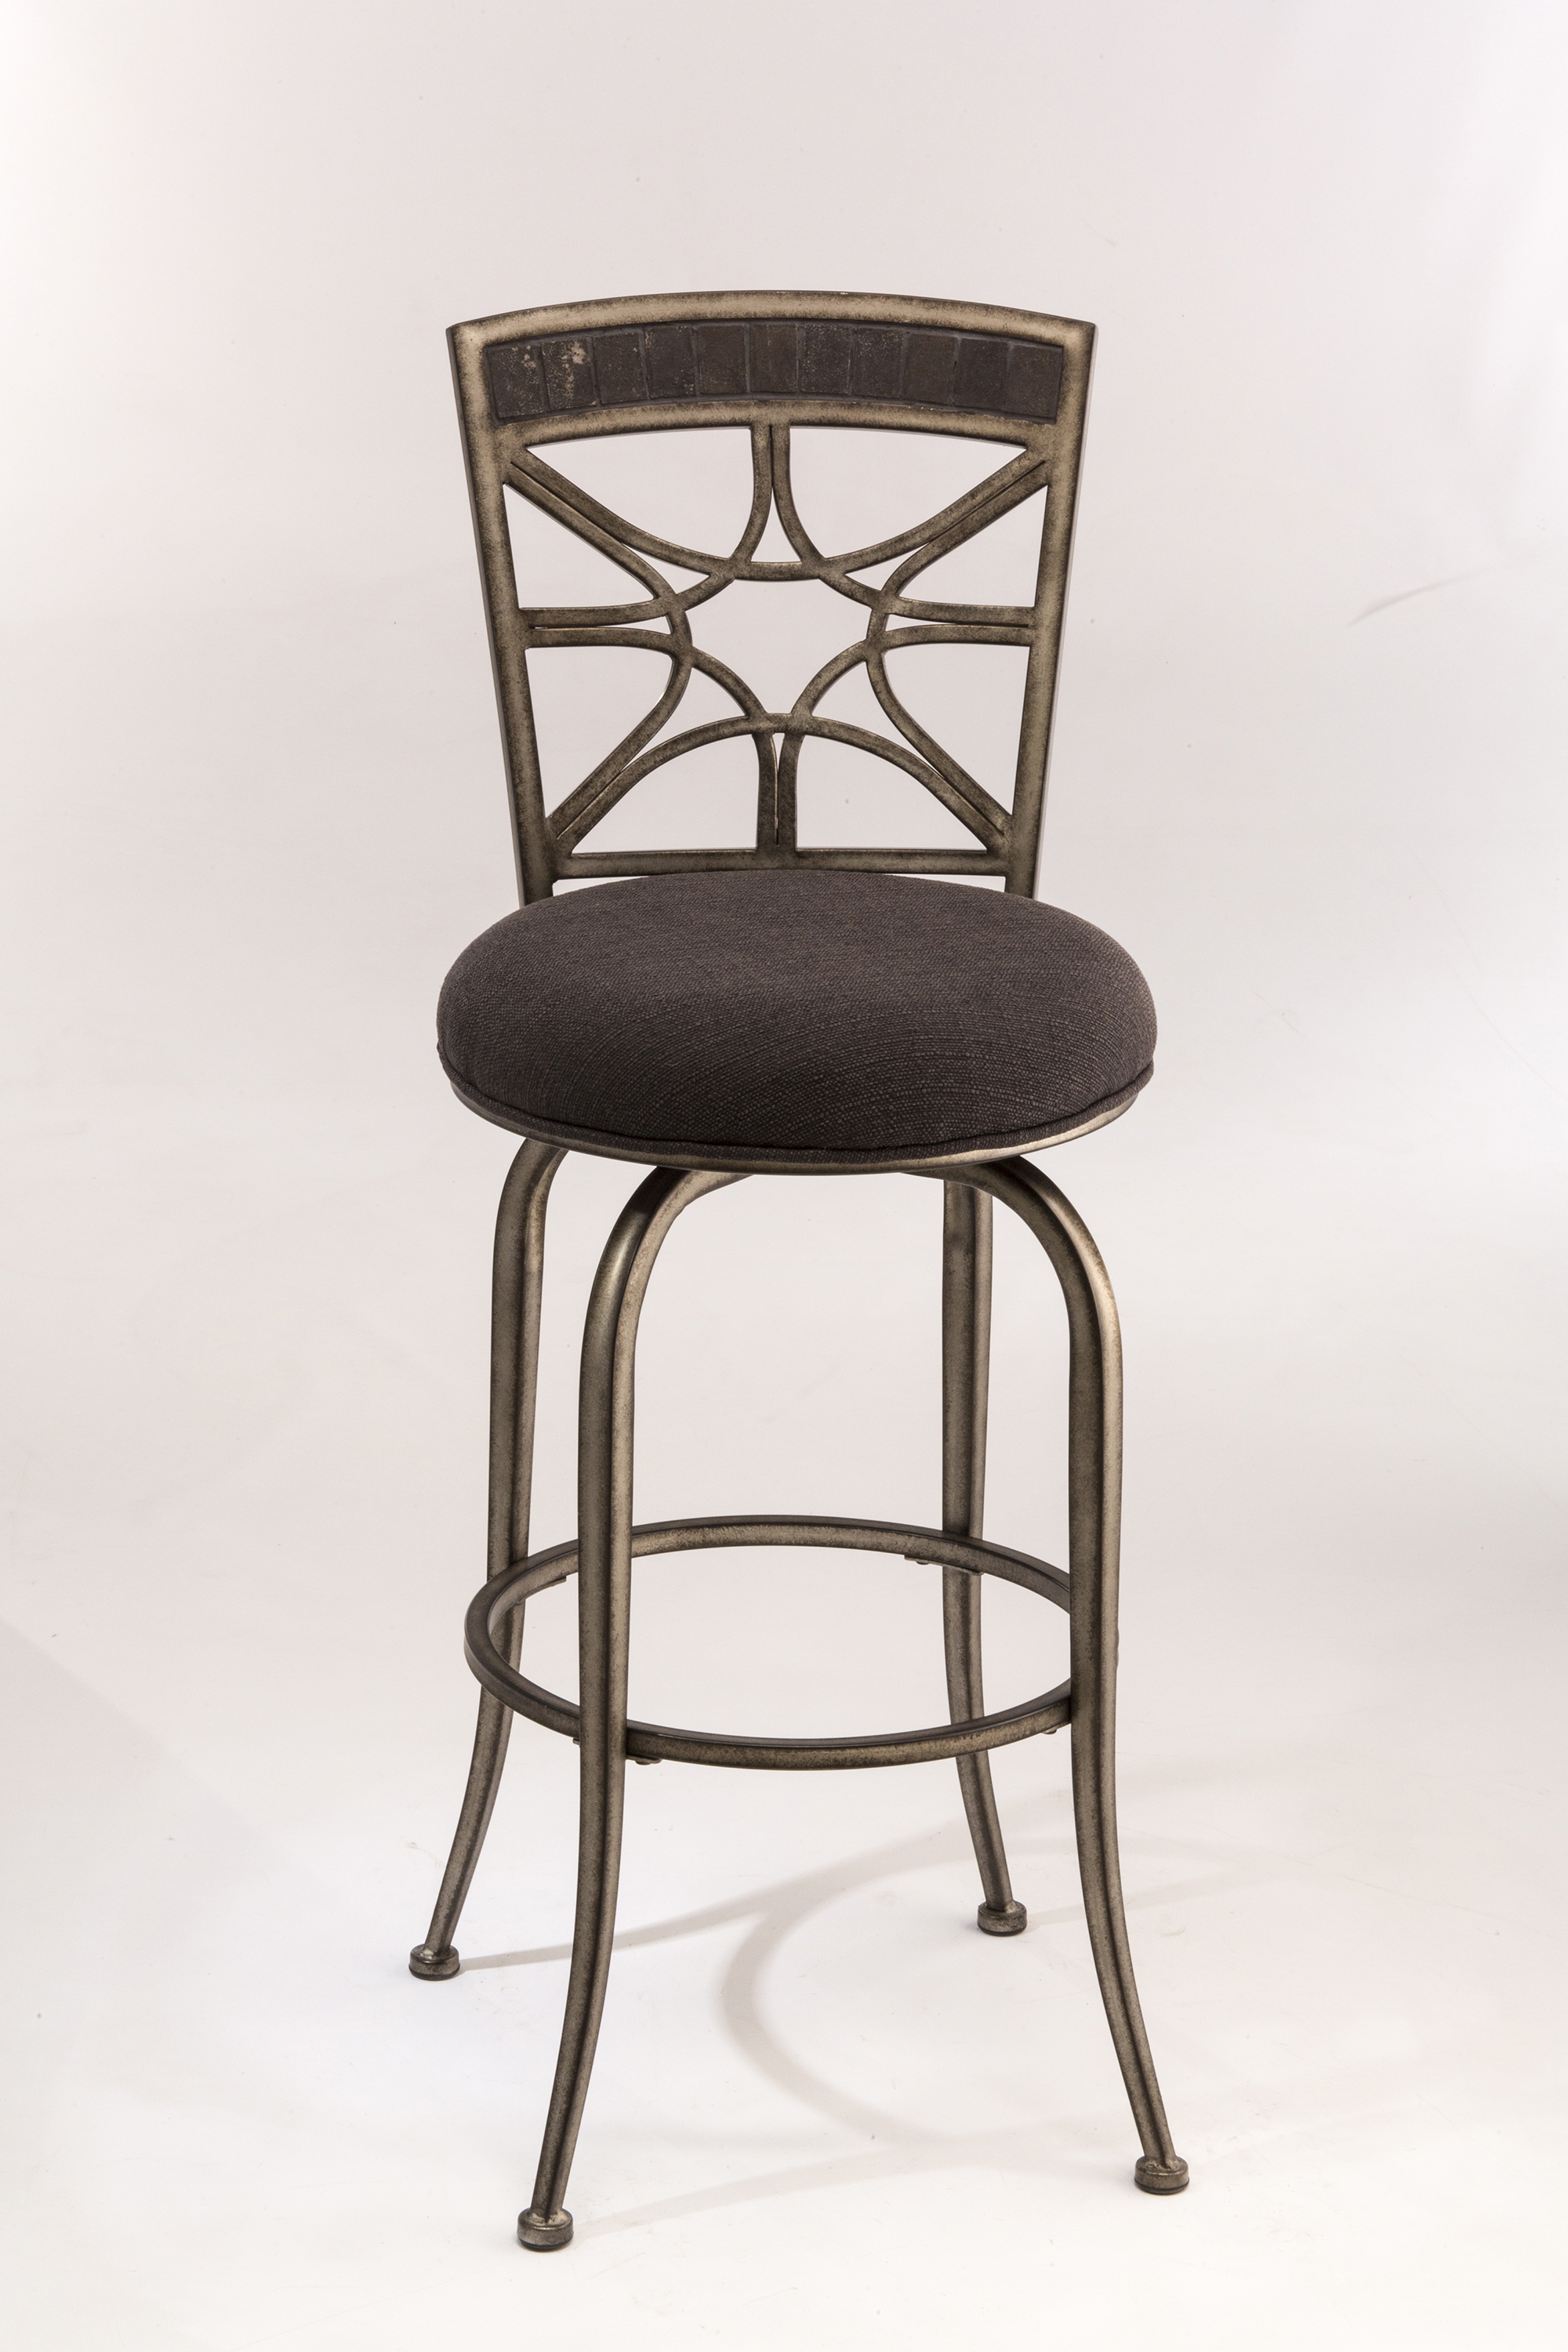 Hillsdale Metal Stools Swivel Counter Stool - Item Number: 5667-826